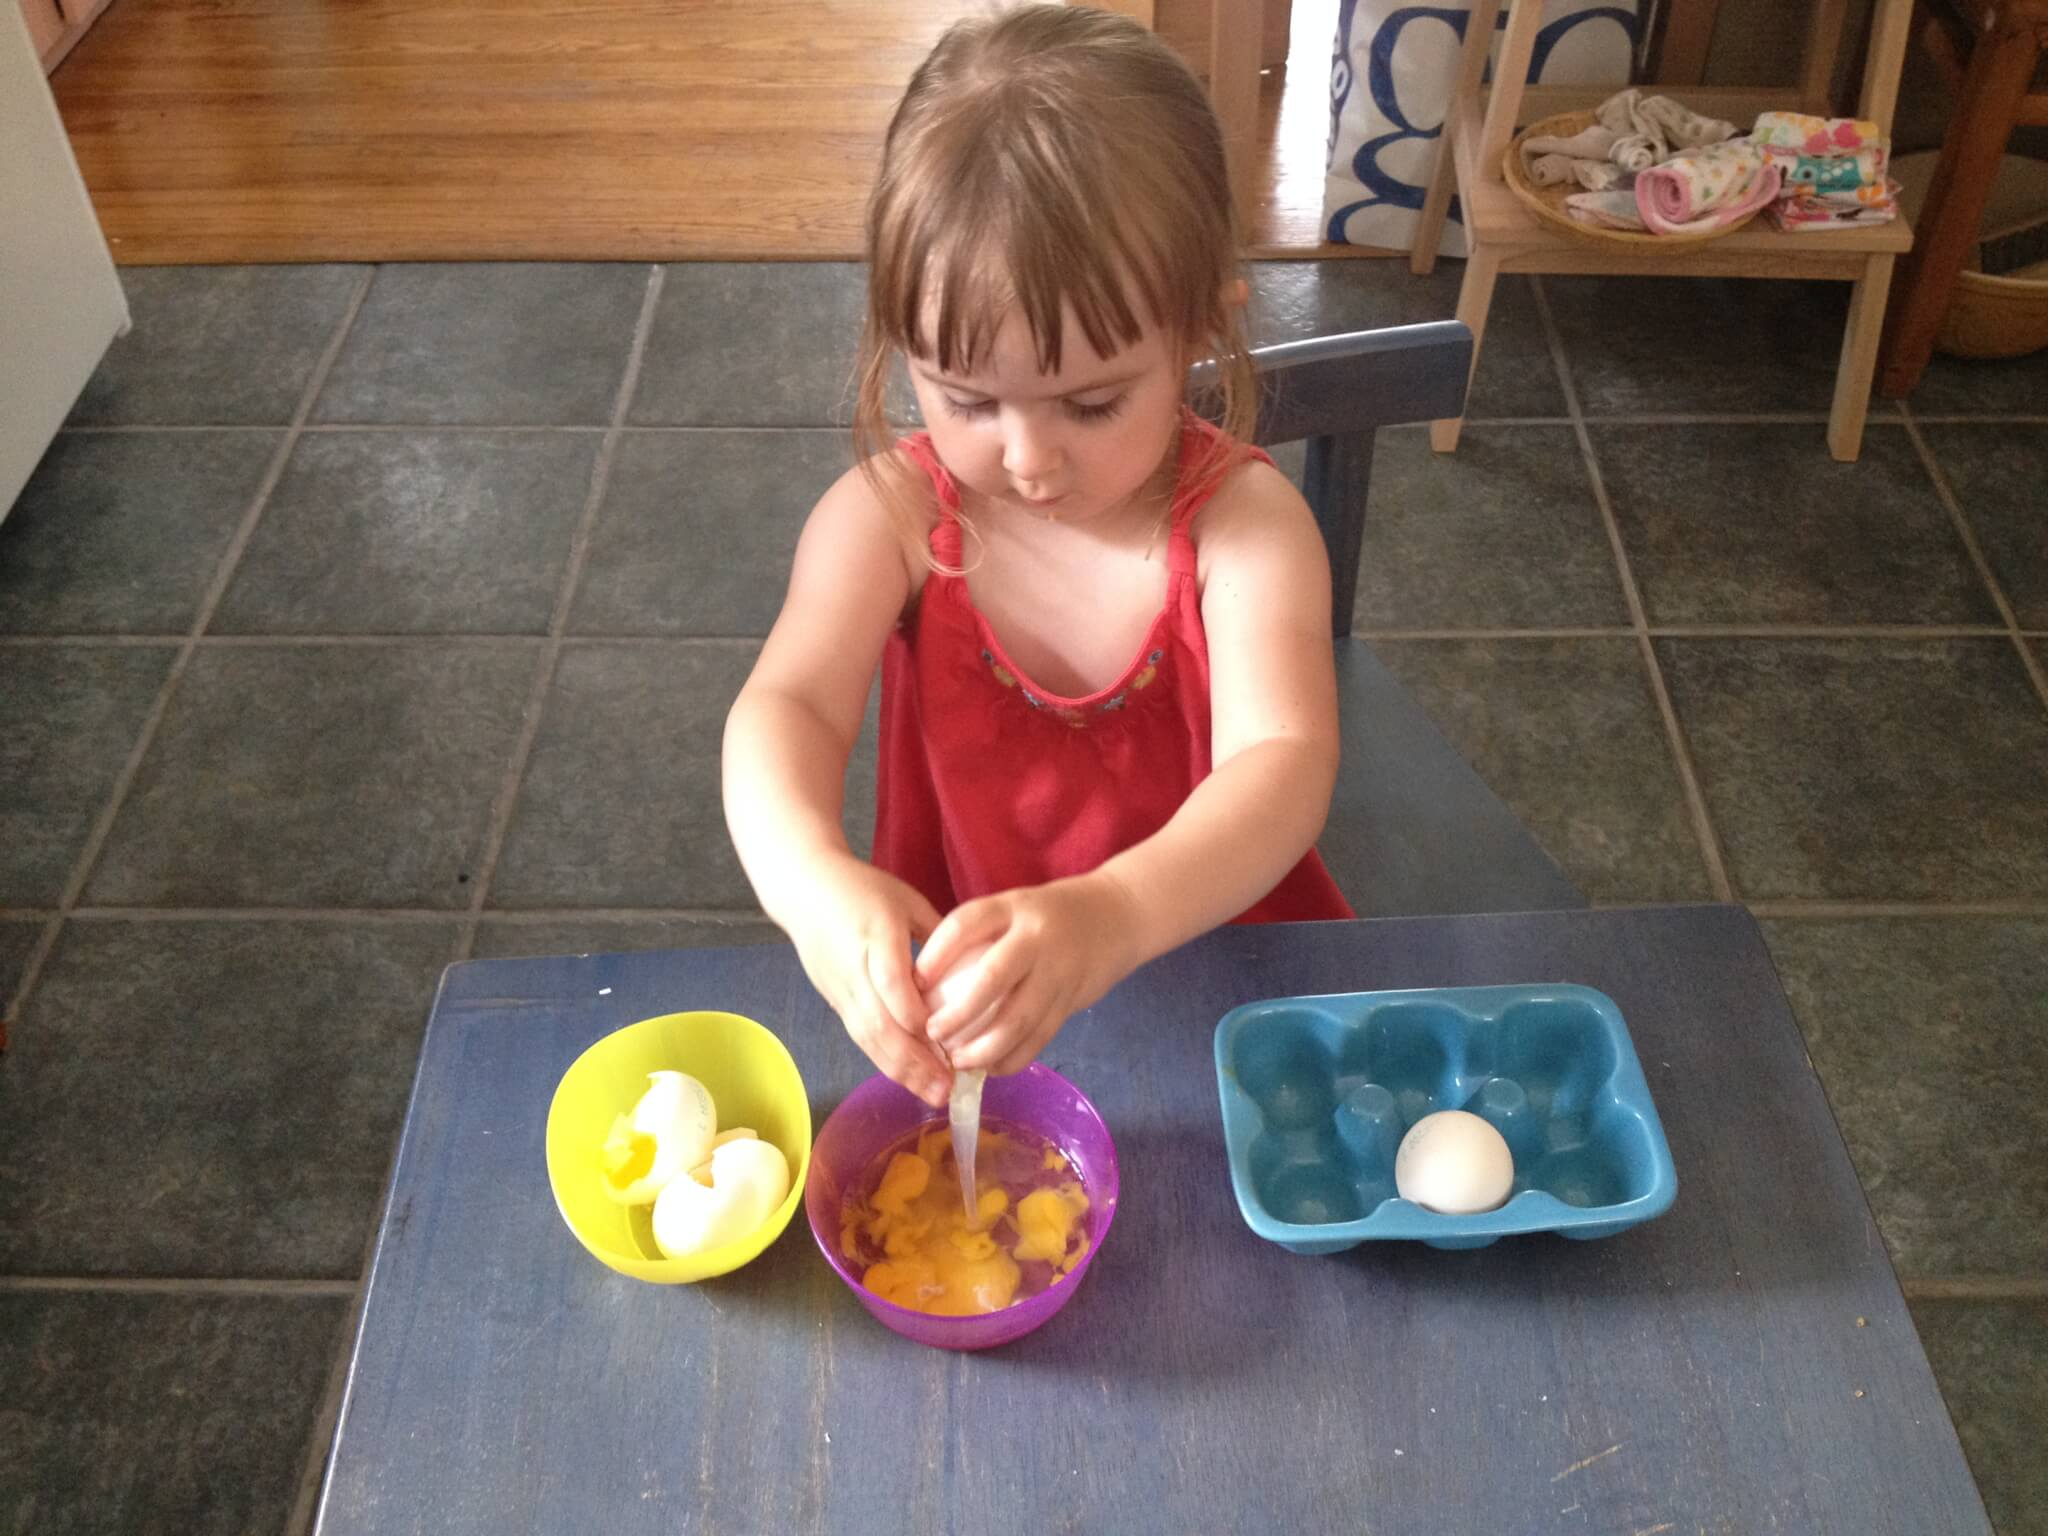 Making green eggs after reading Dr. Seuss's green eggs and ham